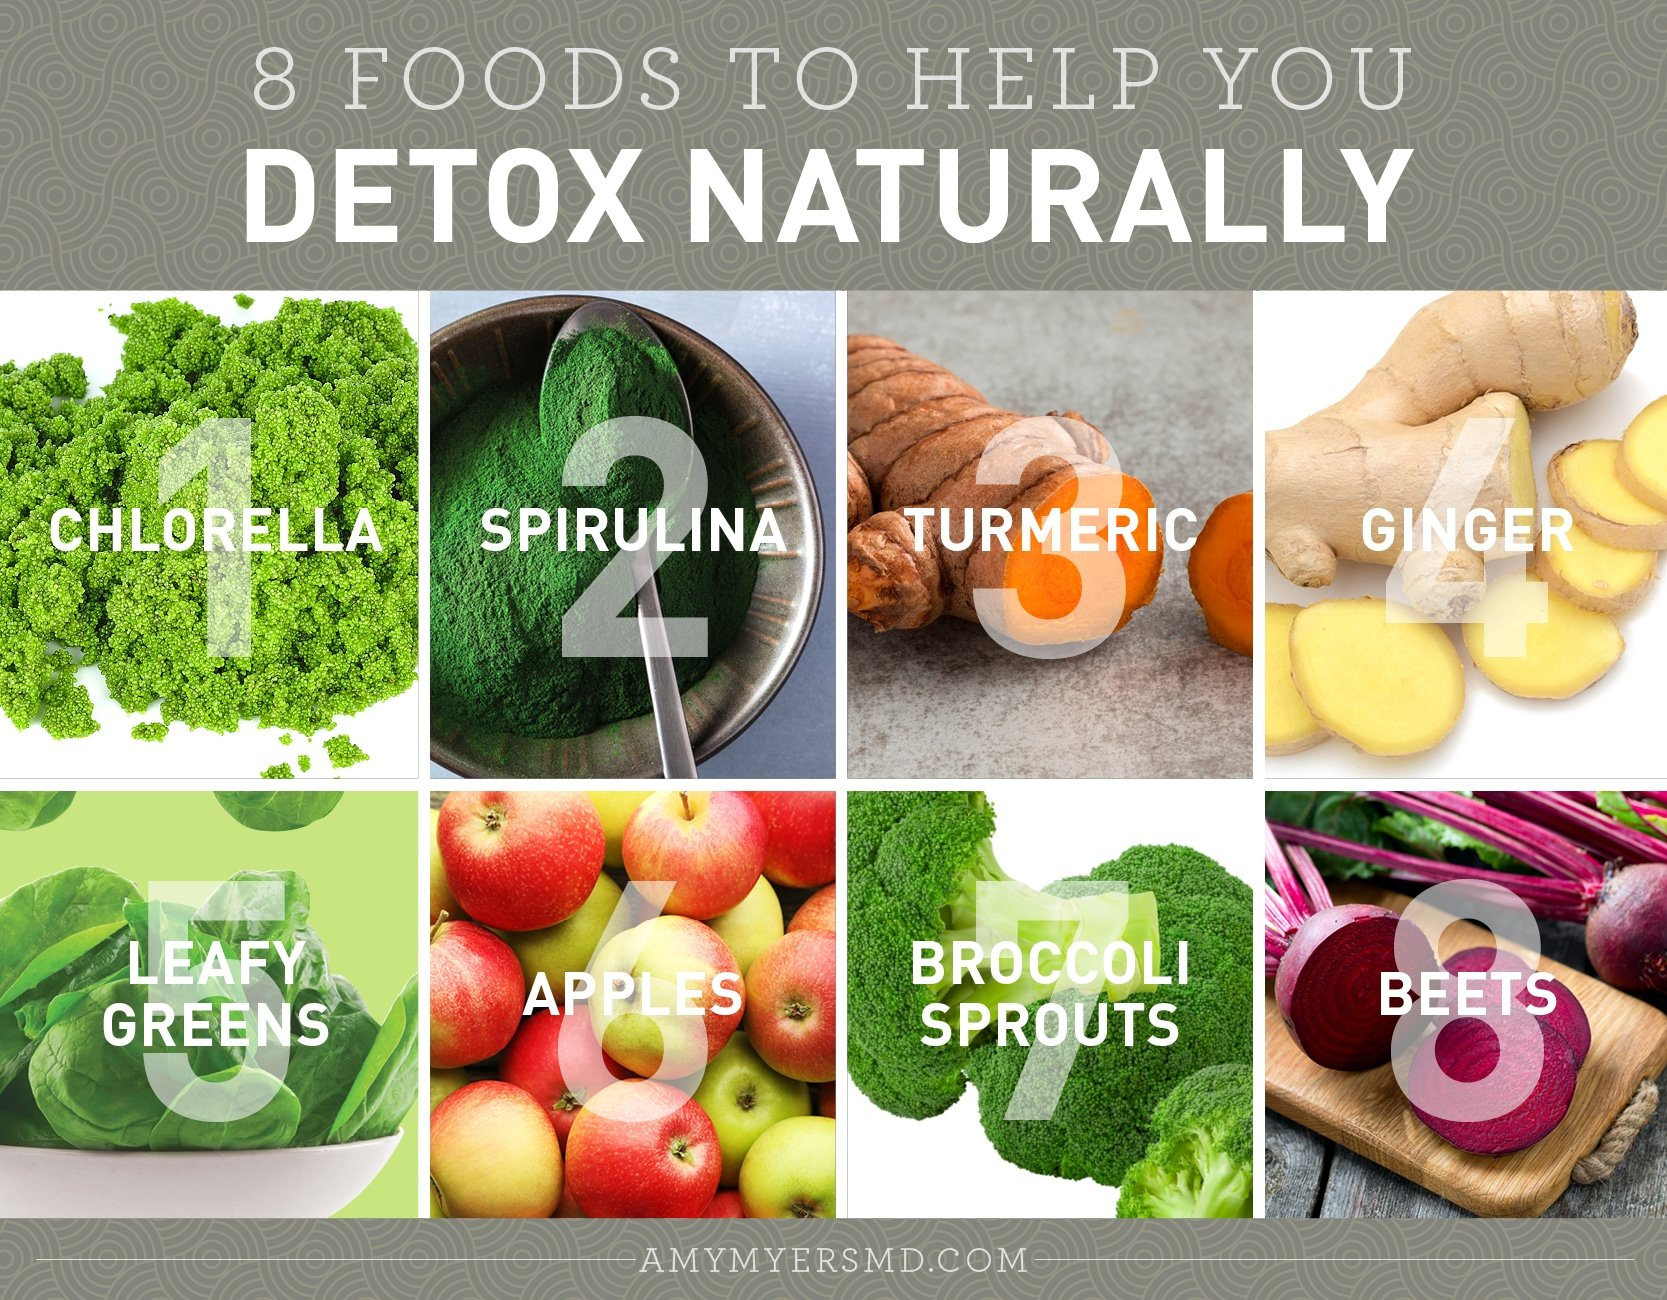 Detoxify Naturally with These 8 Foods - Infographic - Amy Myers MD